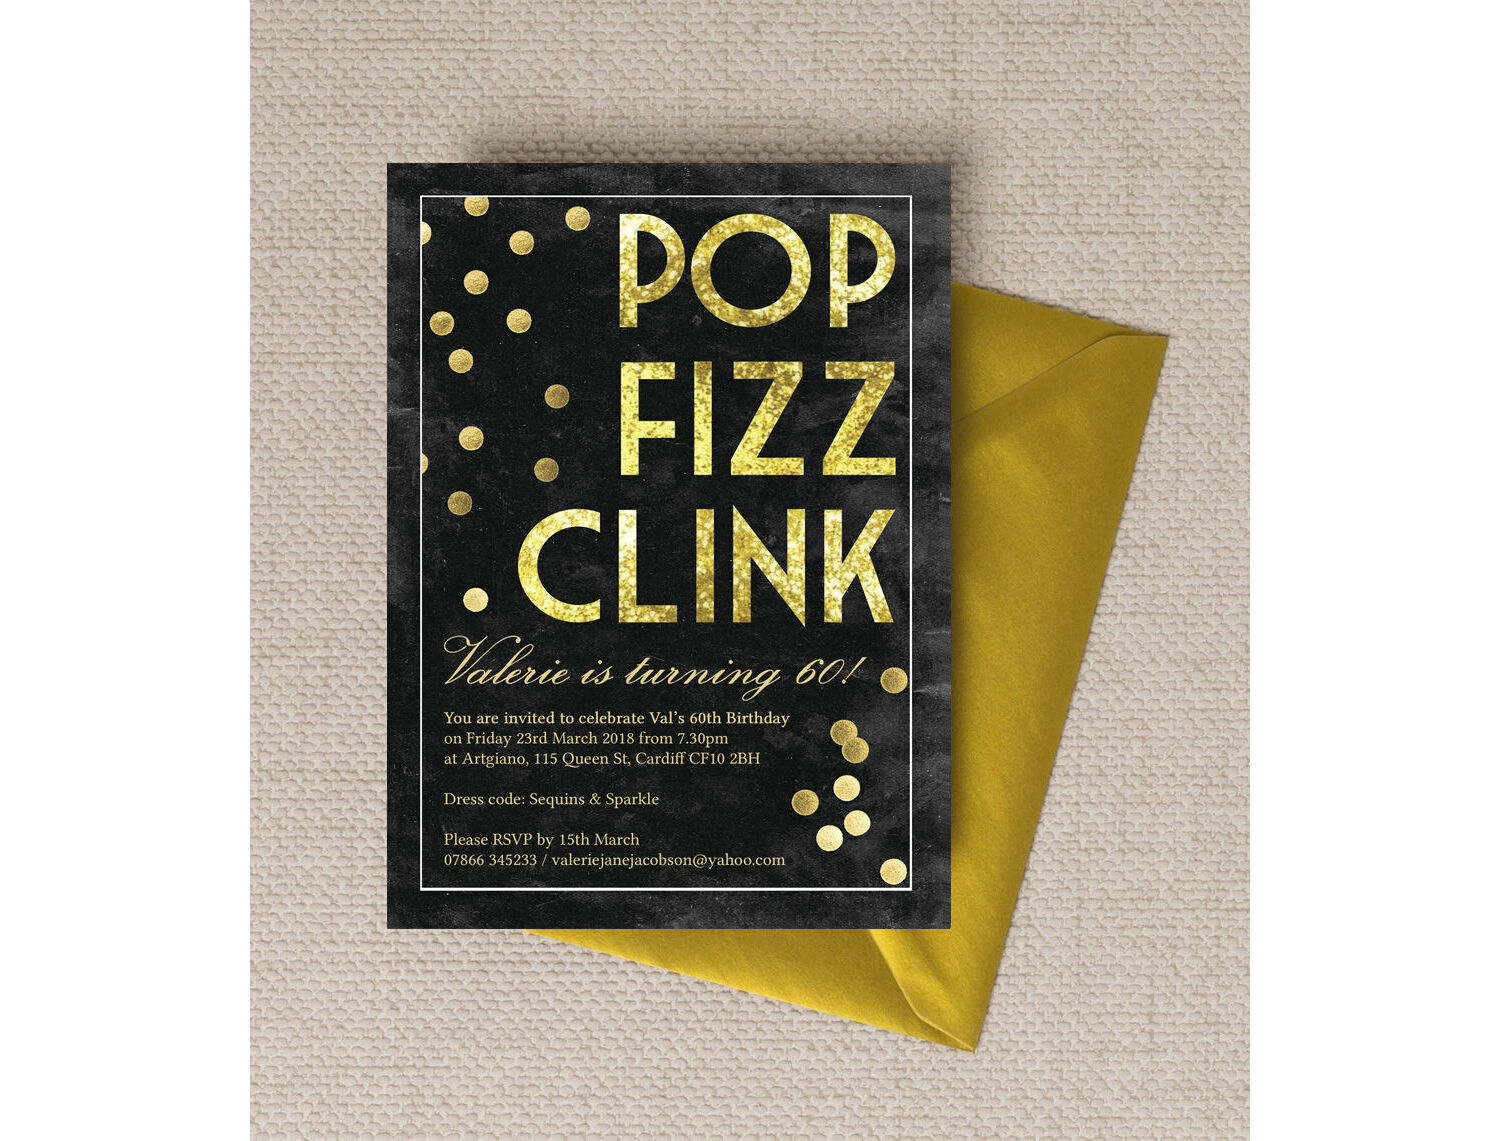 Pop Clink Fizz Champagne Prosecco Themed 60th Birthday Party Invitation